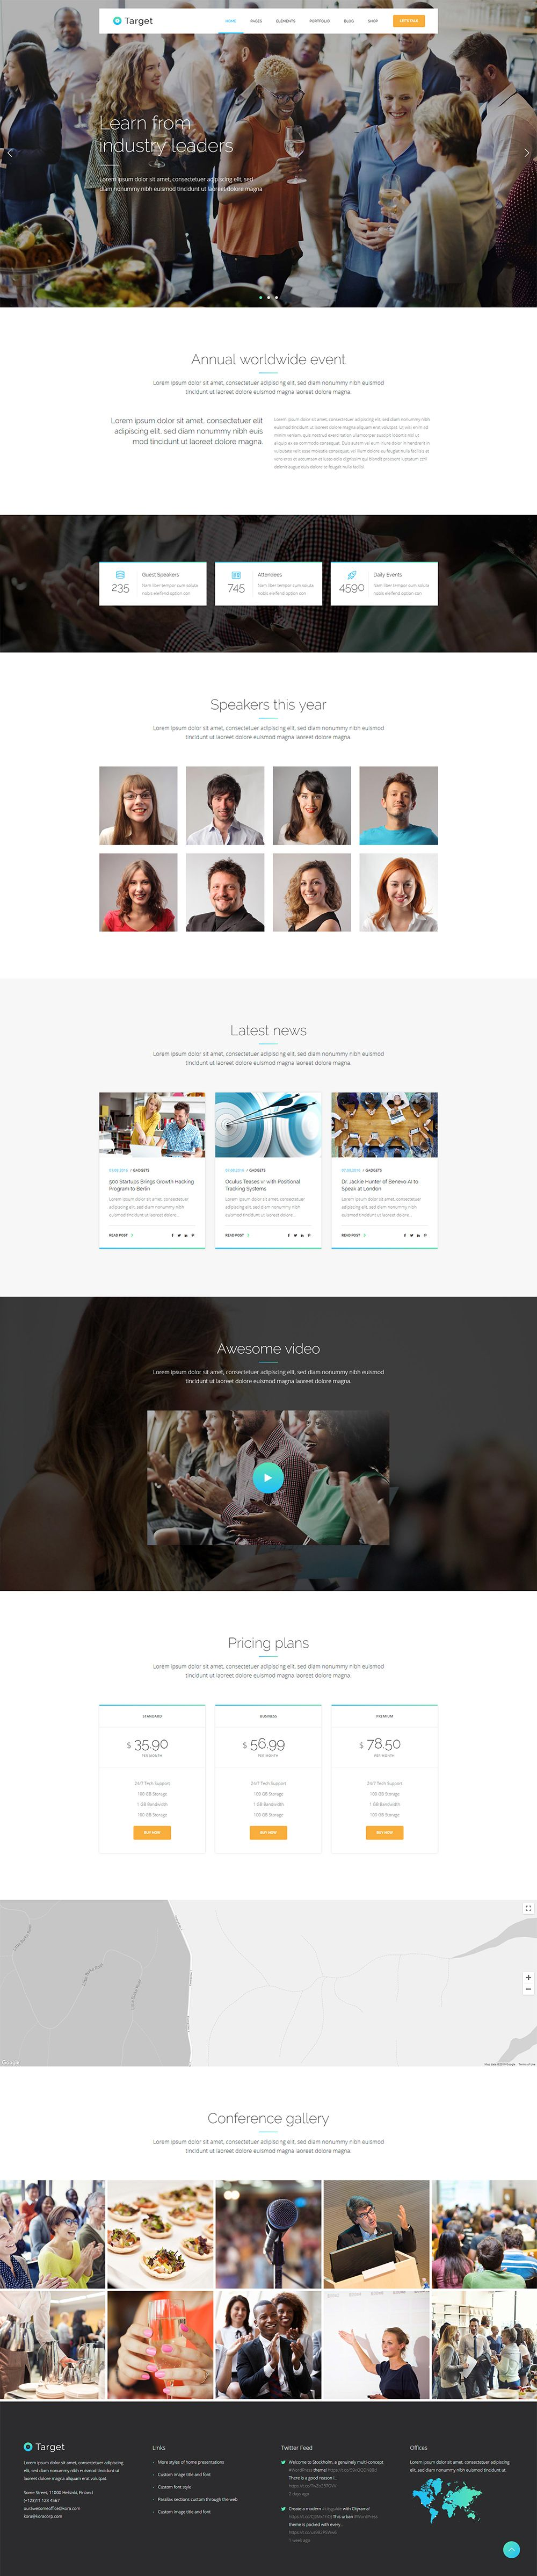 Present Your Conference With A Modern Website With The Help Of Target Wordpress Theme Wordpress T Hacking Programs Modern Website Business Wordpress Themes